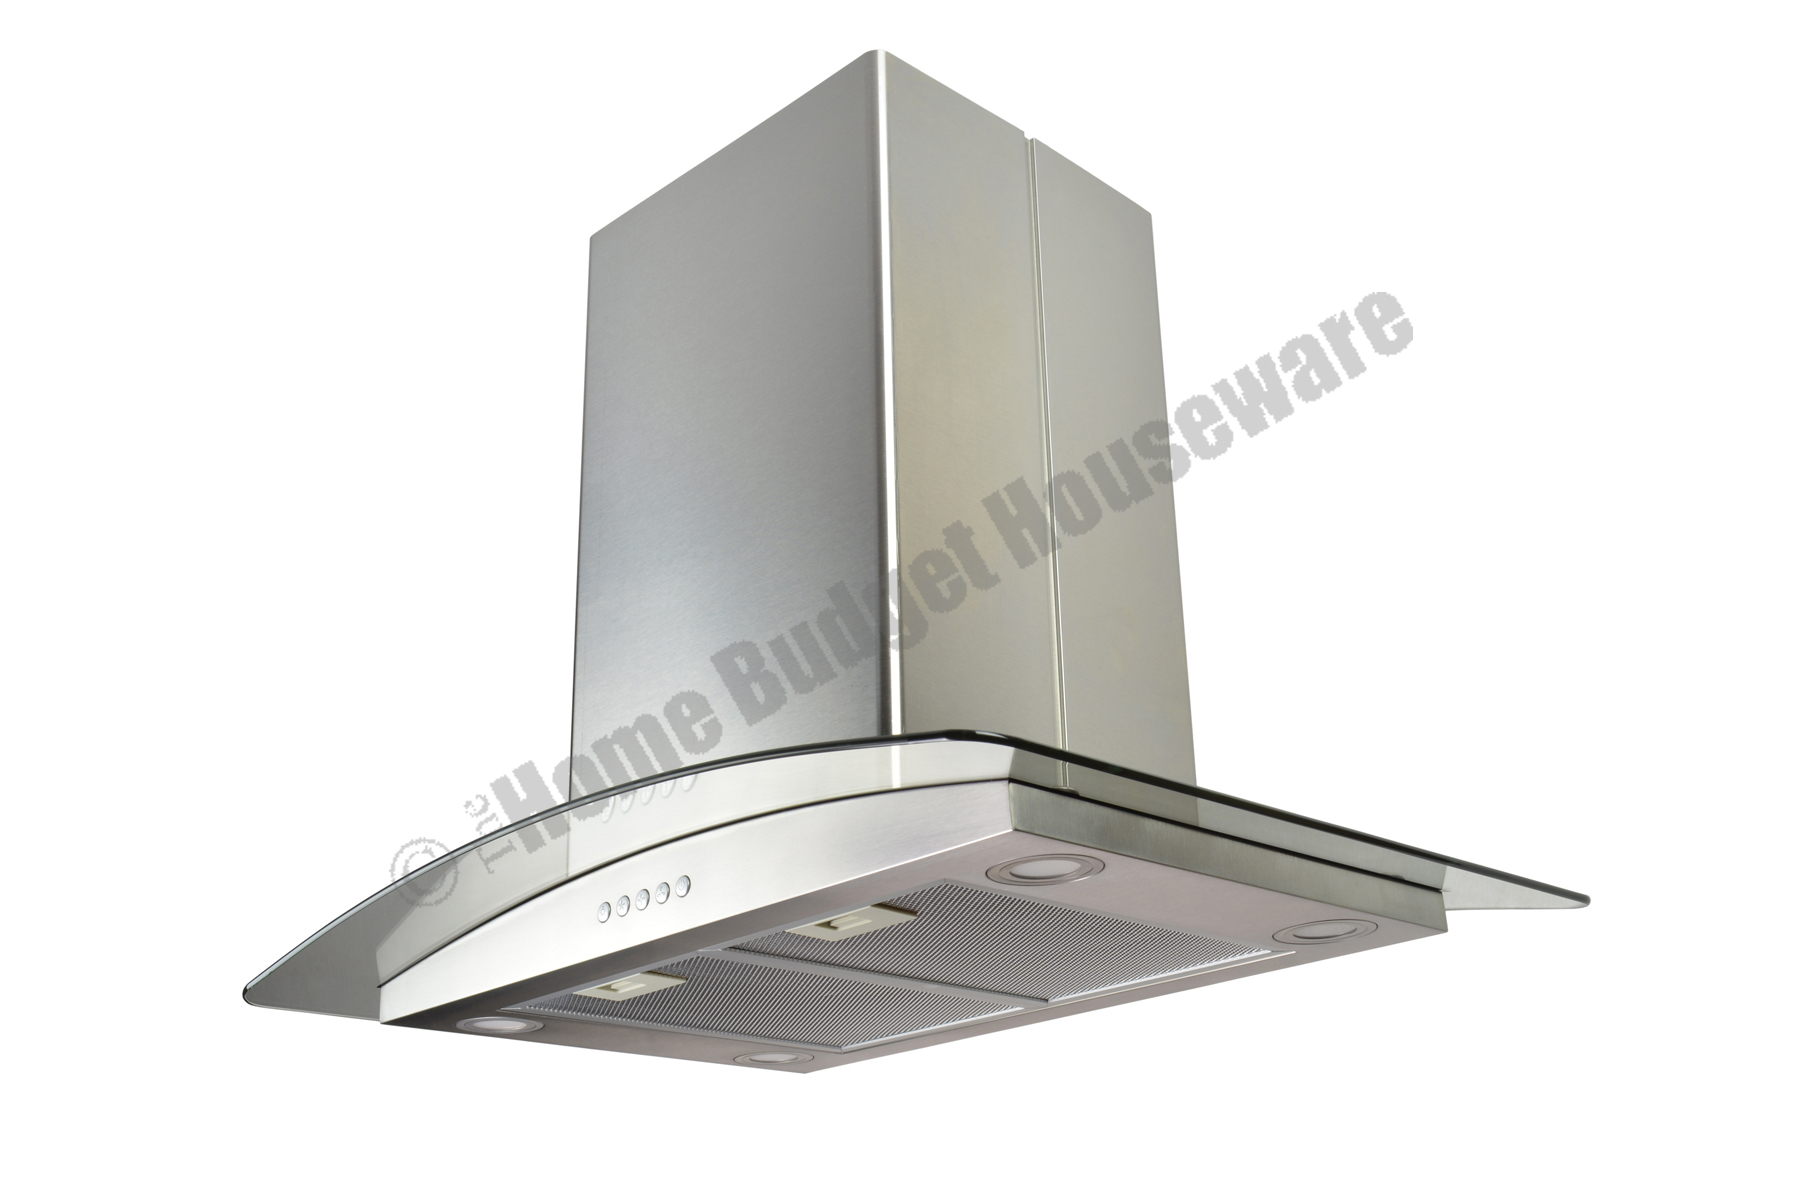 30 Island Stainless Steel Range Hood Vent With Charcoal